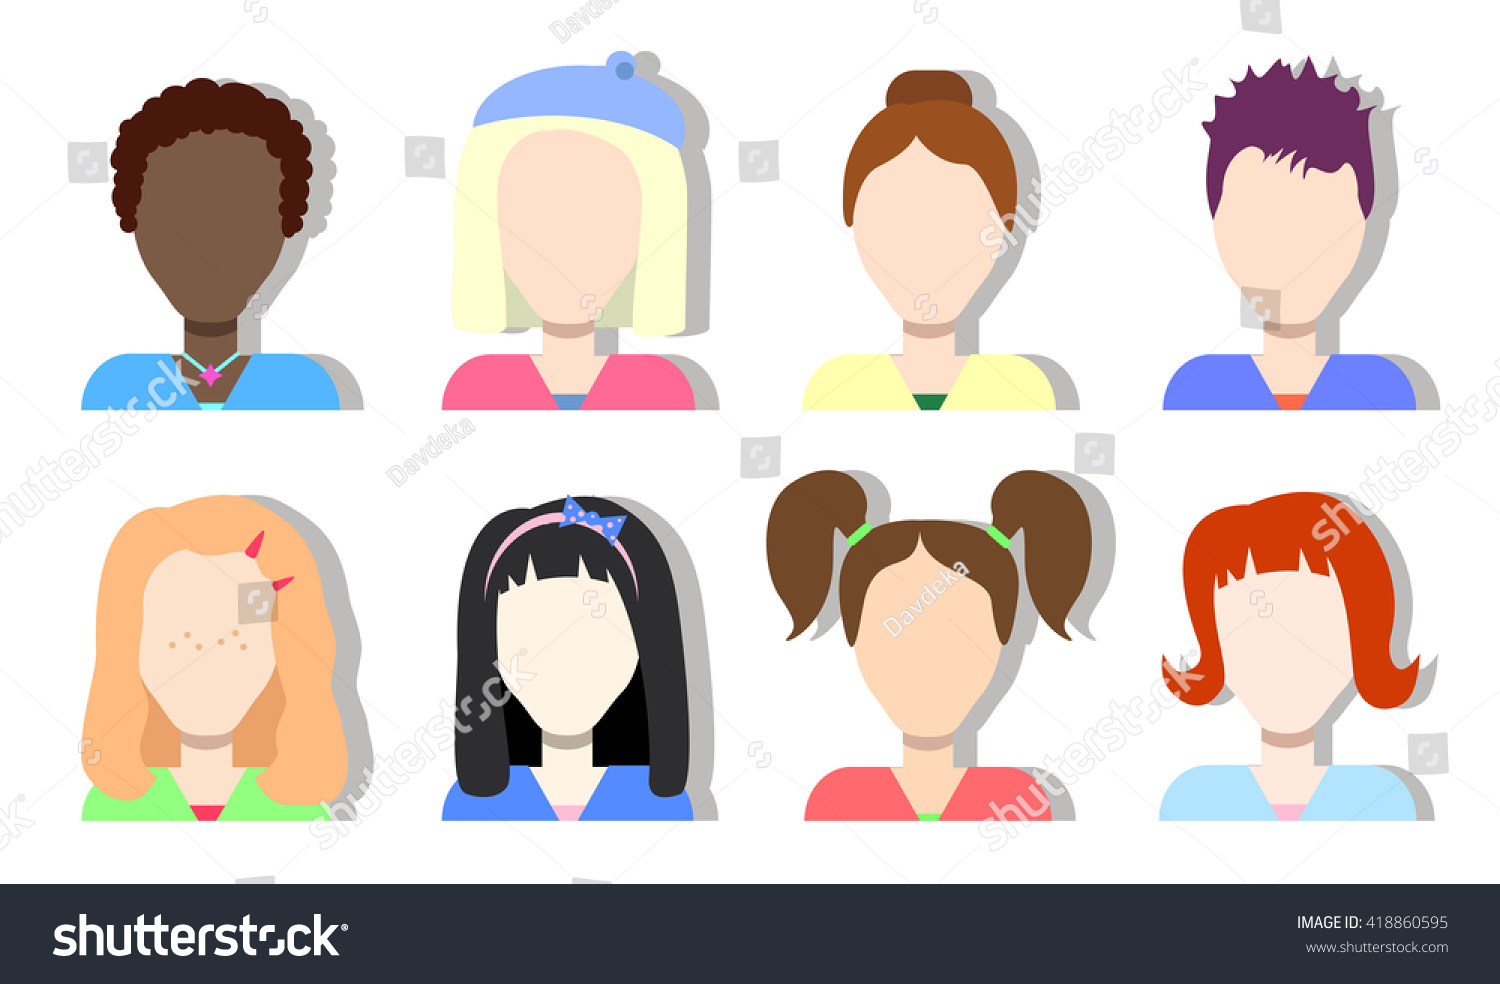 Faceless Avatar Icons Girls Women Diversity Stock Vector 418860595 ...